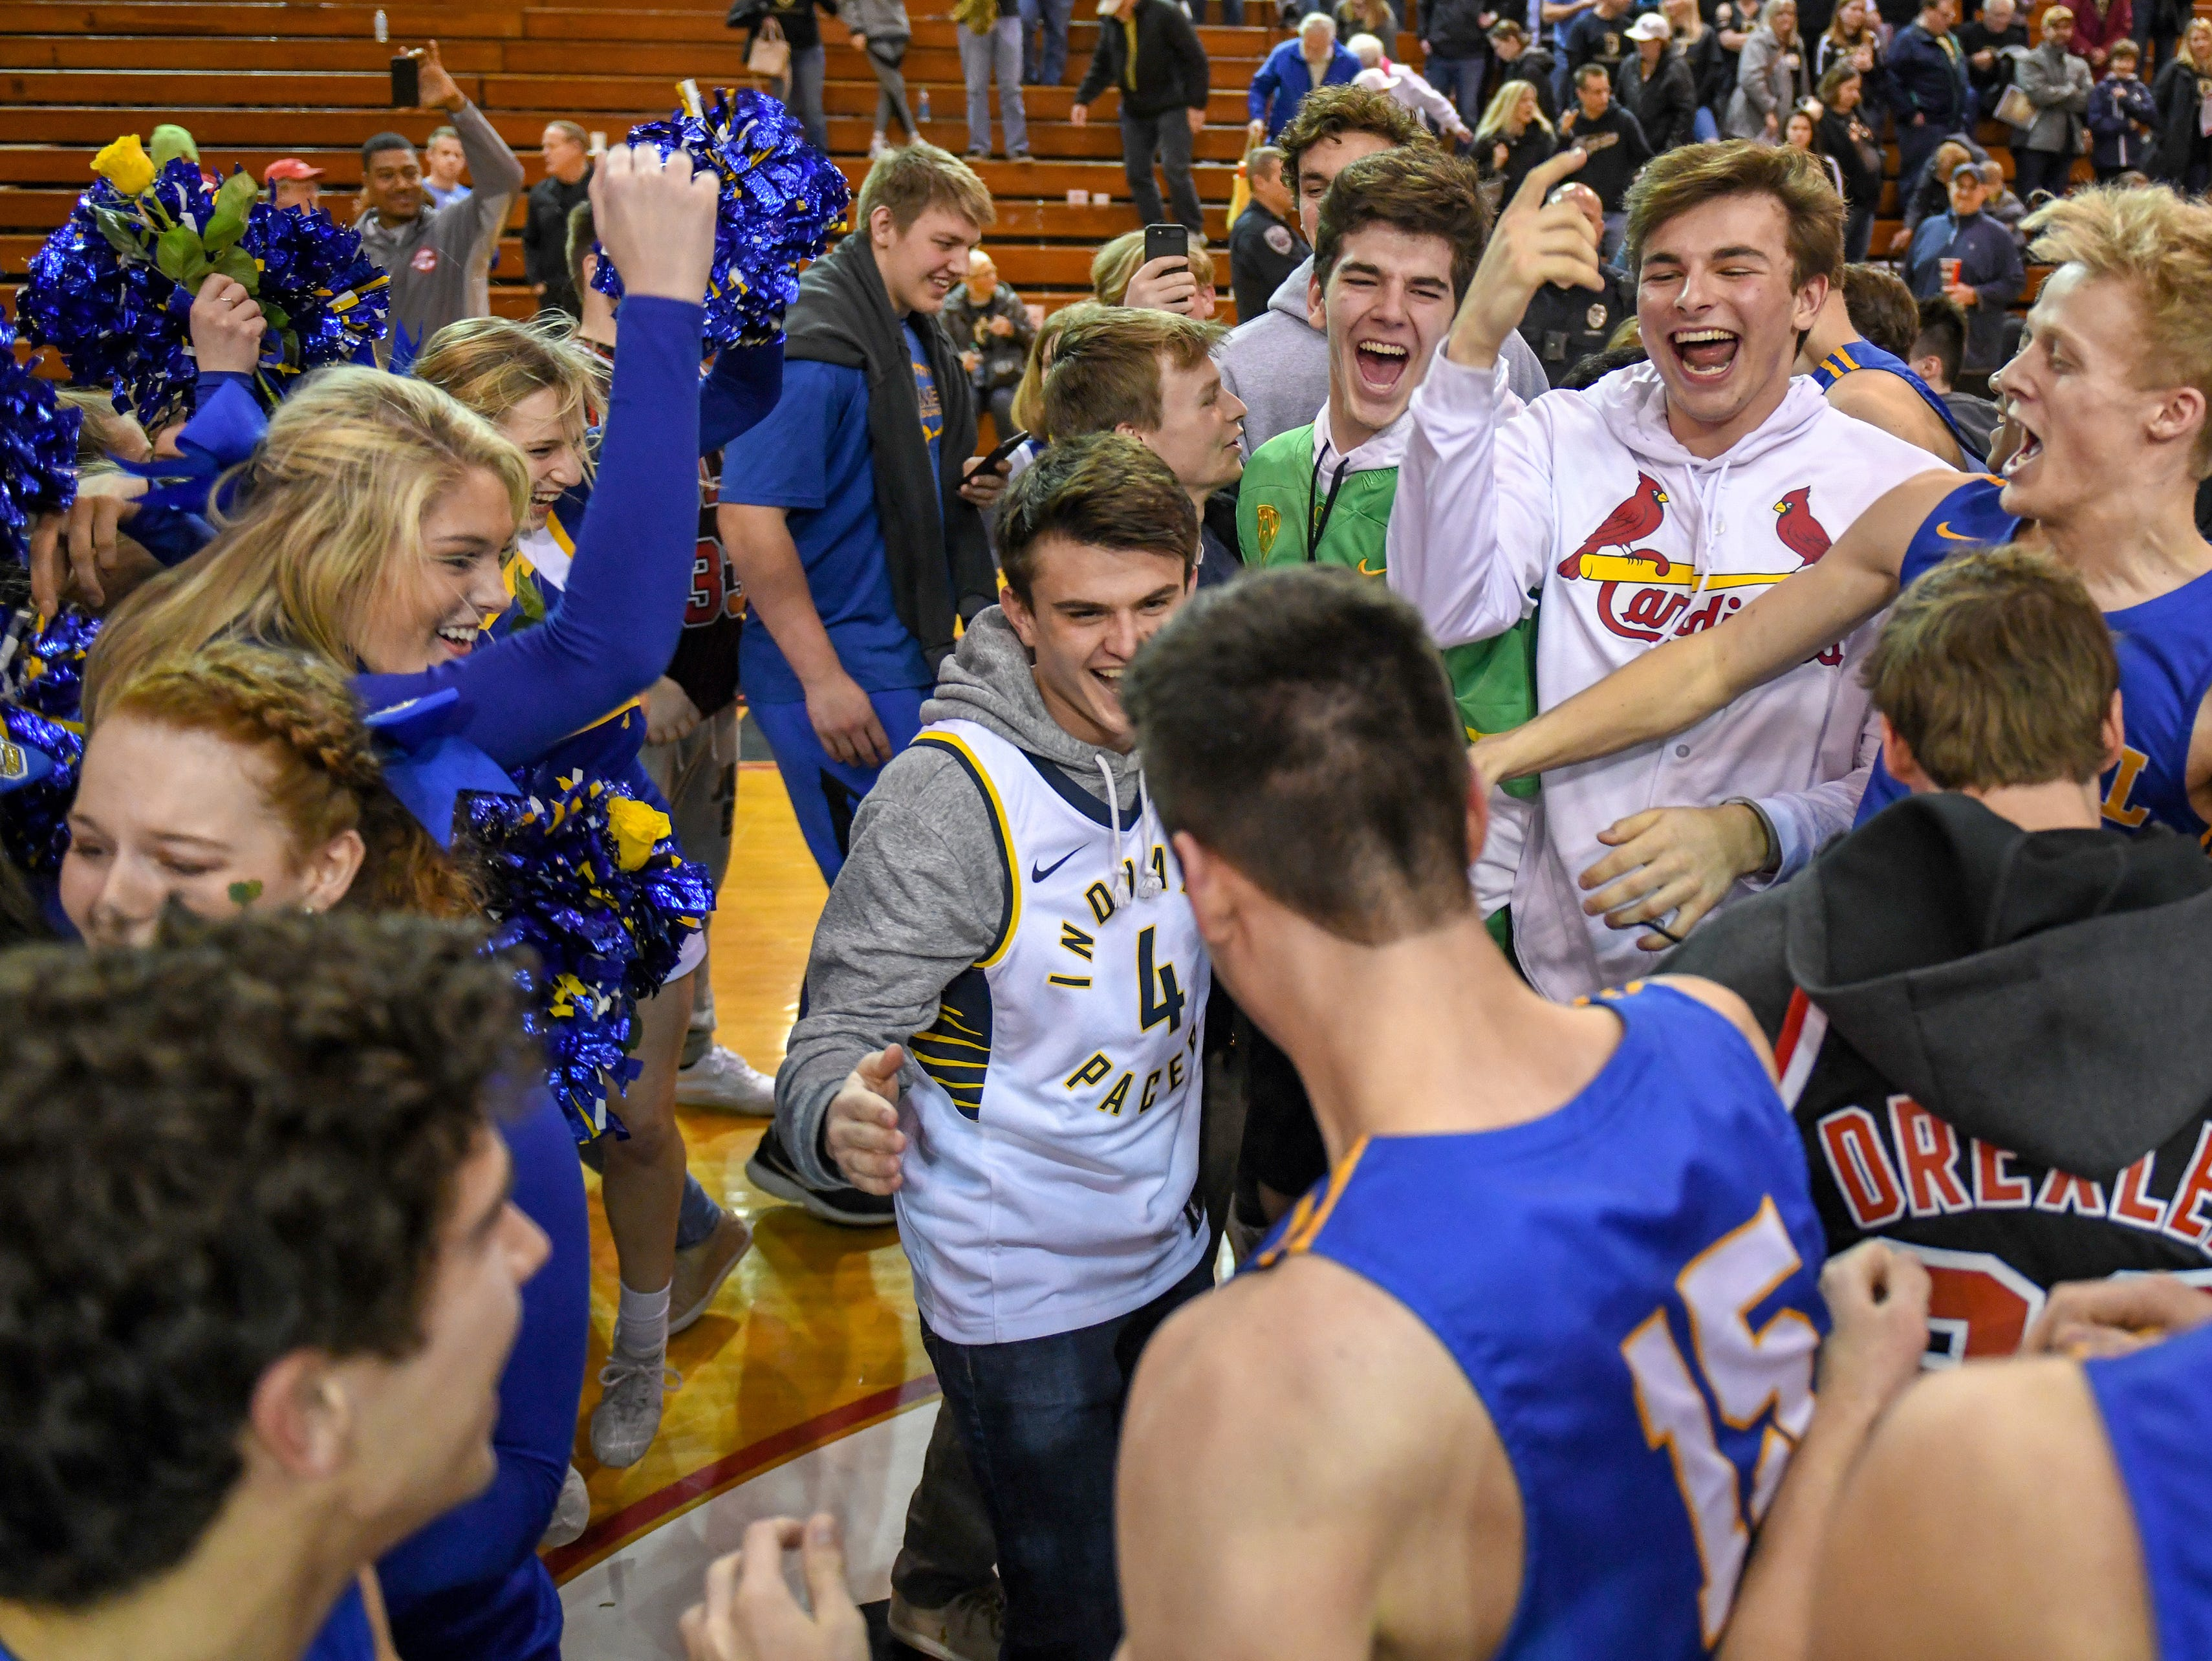 Carmel wins 71-42 win over Penn High School in Lafayette on Saturday March 16, 2019. Carmel moves on to the state finals after winning the 4A semi-state today.